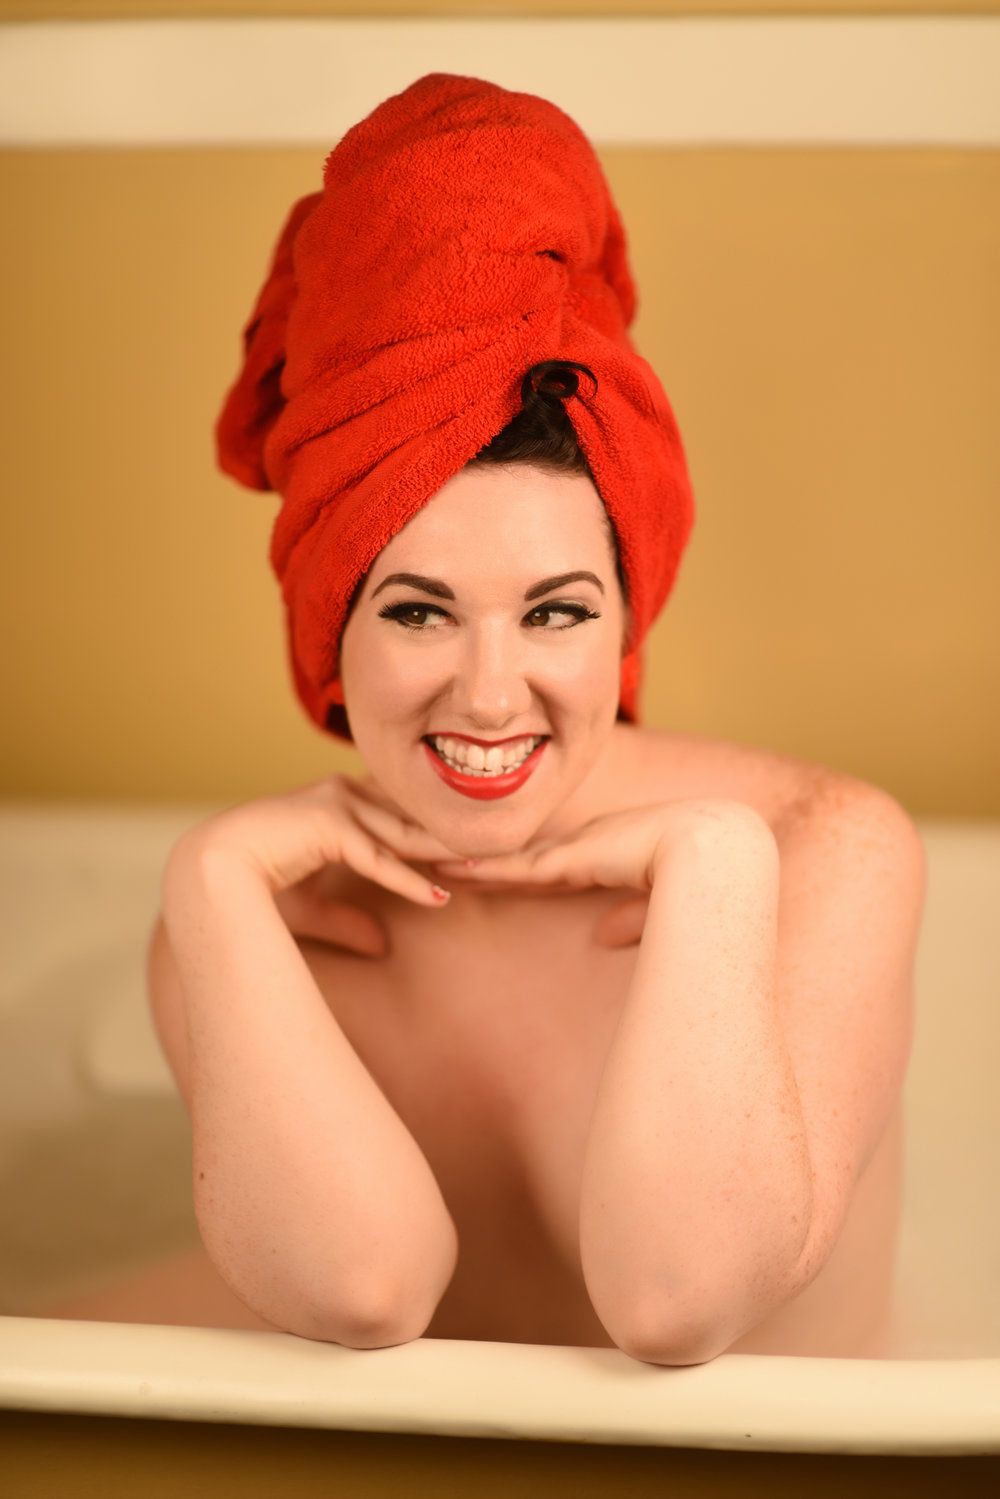 Bathtub Boudoir Photographer in Denver La Photographie 05.jpg